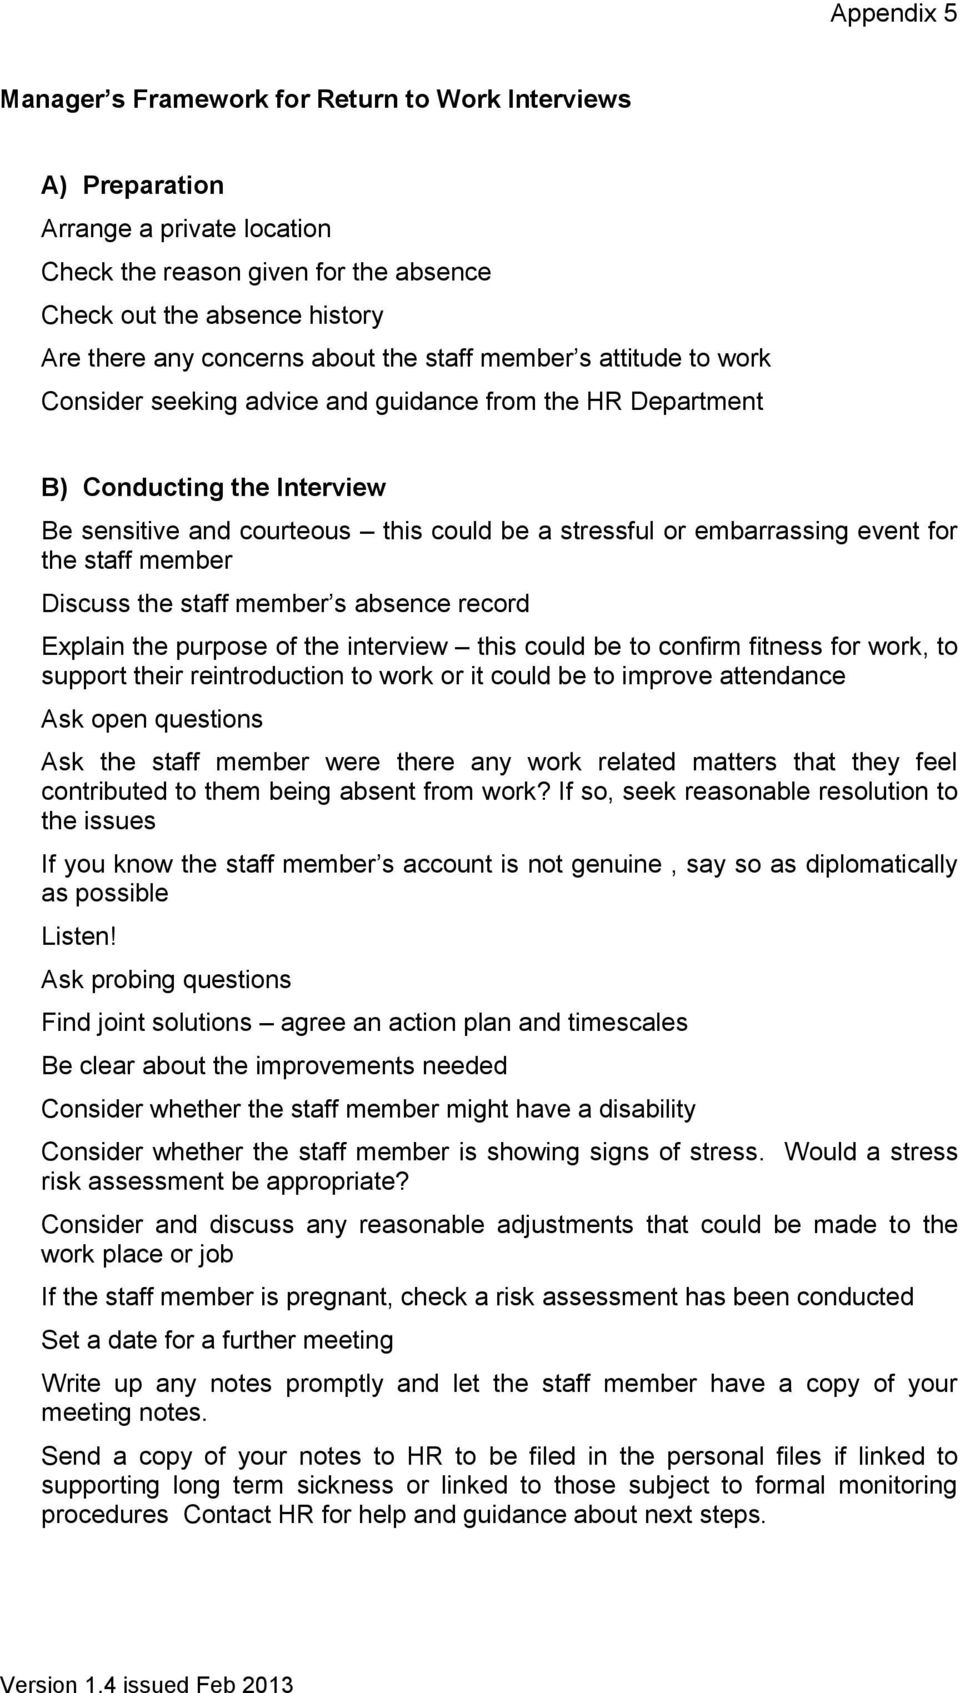 event for the staff member Discuss the staff member s absence record Explain the purpose of the interview this could be to confirm fitness for work, to support their reintroduction to work or it